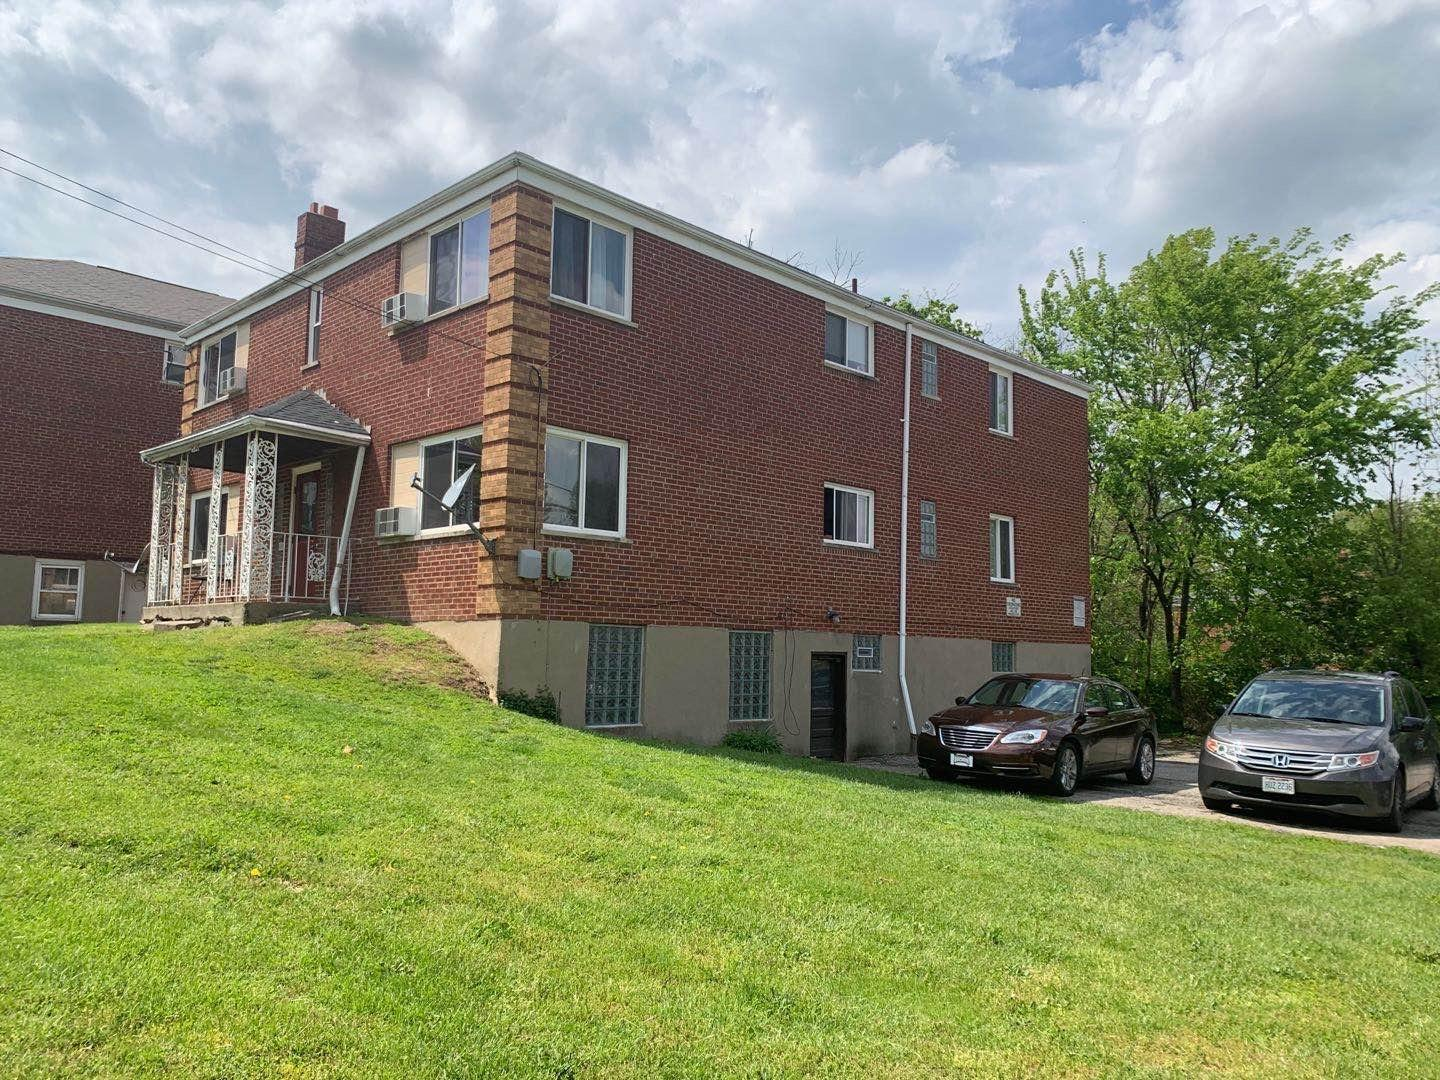 Photo 2 for 2556 Kipling Ave Mt. Airy, OH 45239